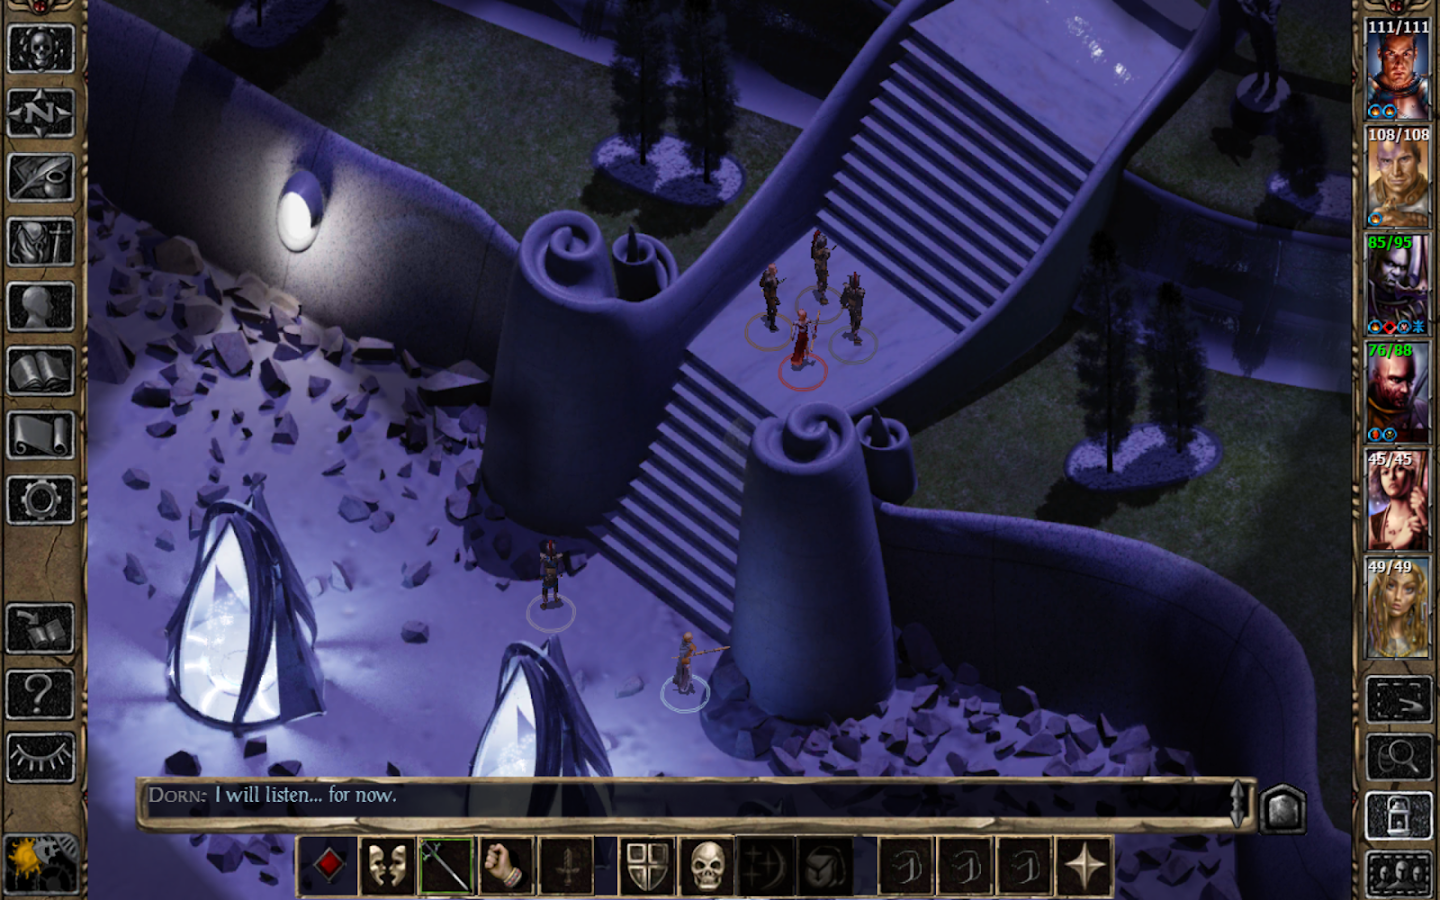 Baldur's Gate II Screenshot 14